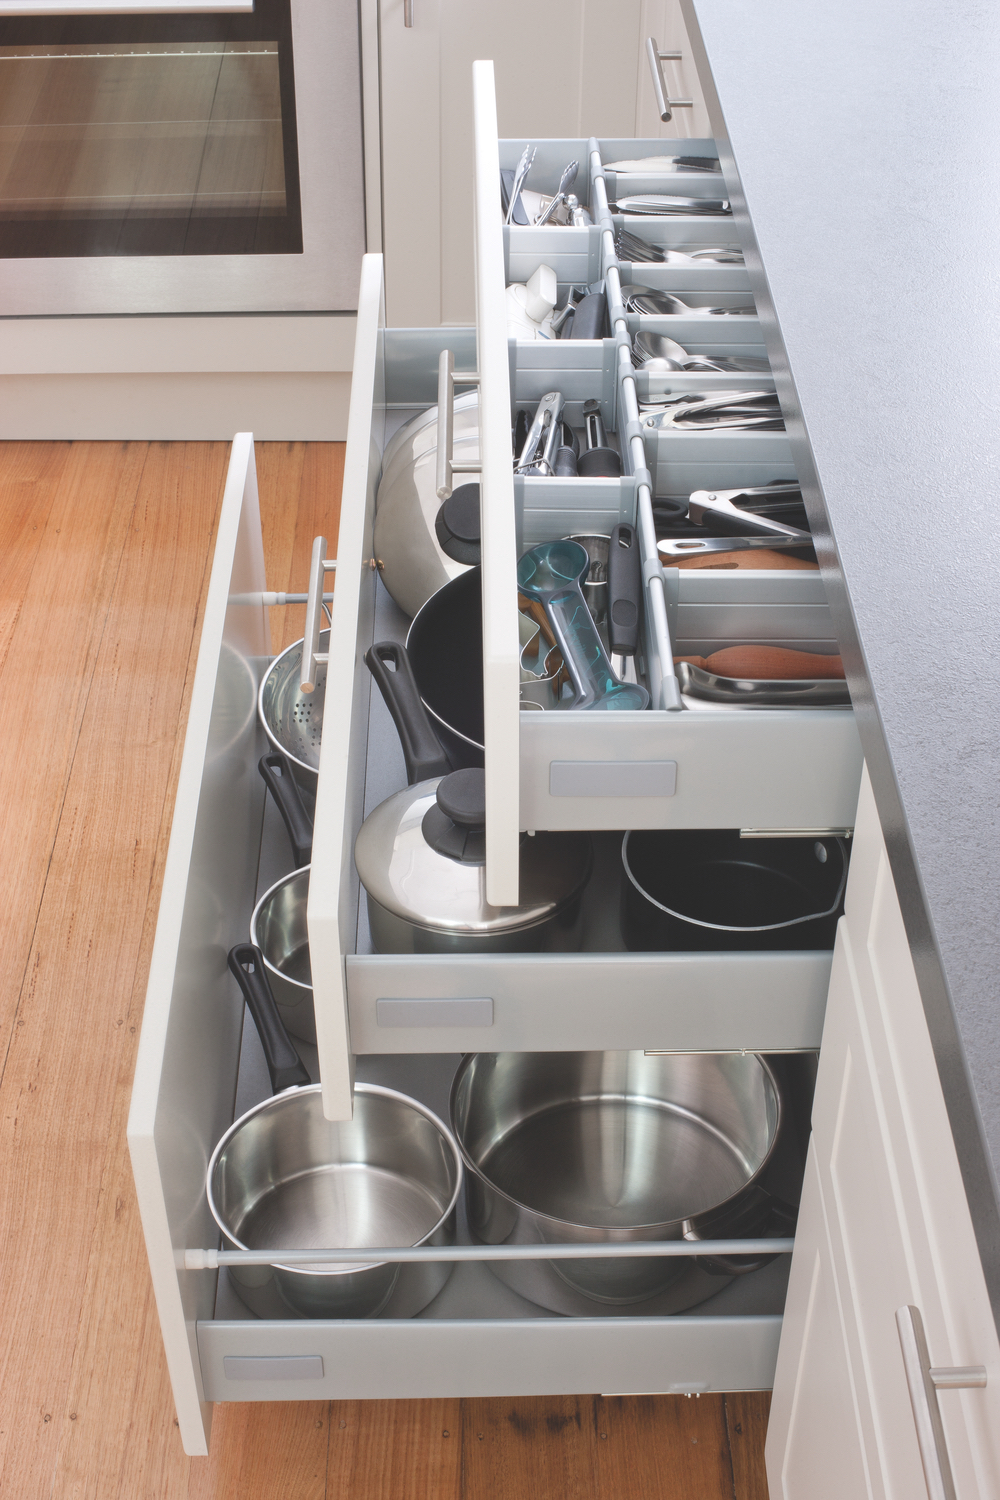 flat pack kitchens design blog - kitchen storage